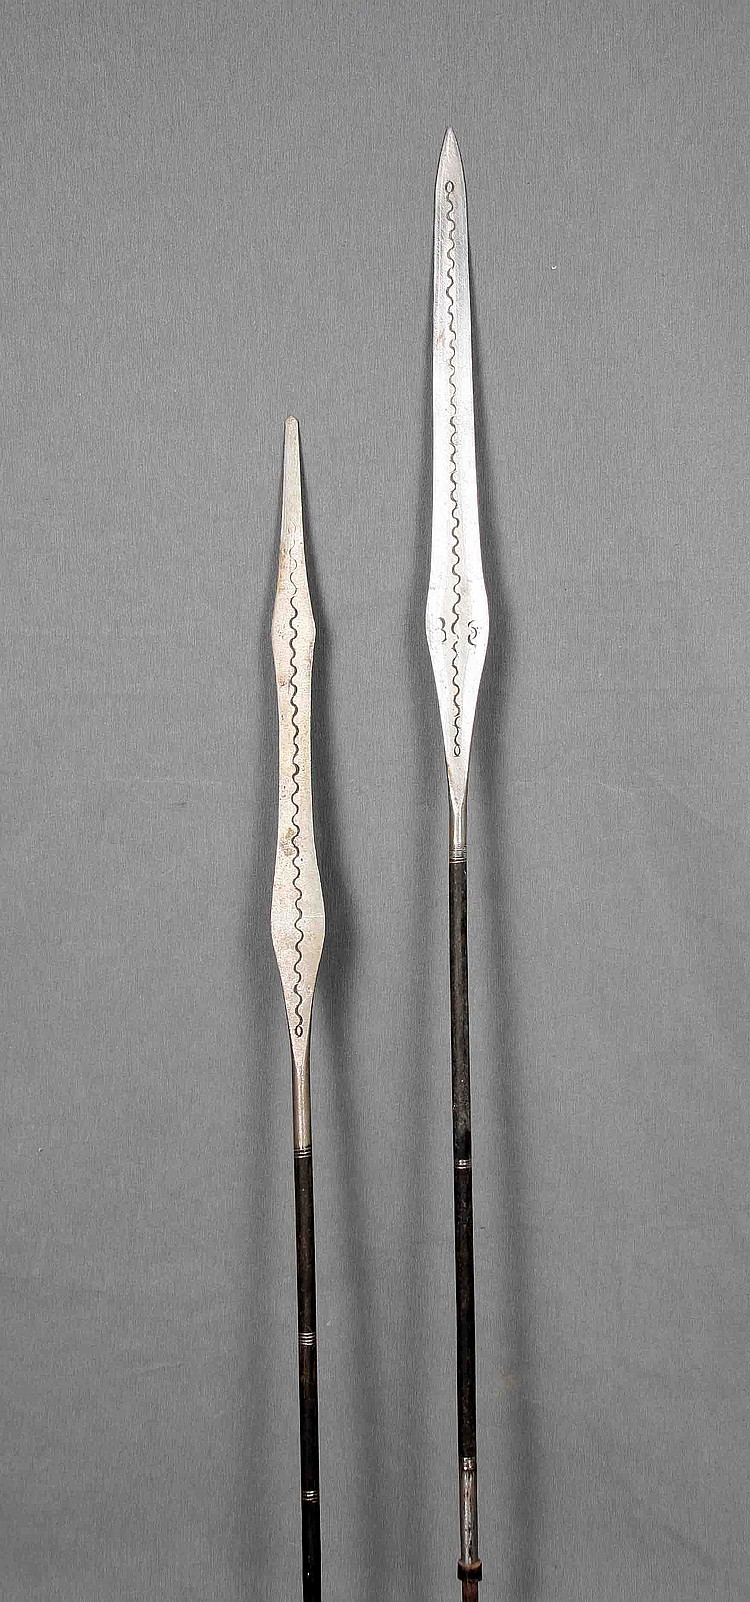 A PAIR OF TUAREG TRIBE IRON SPEARS